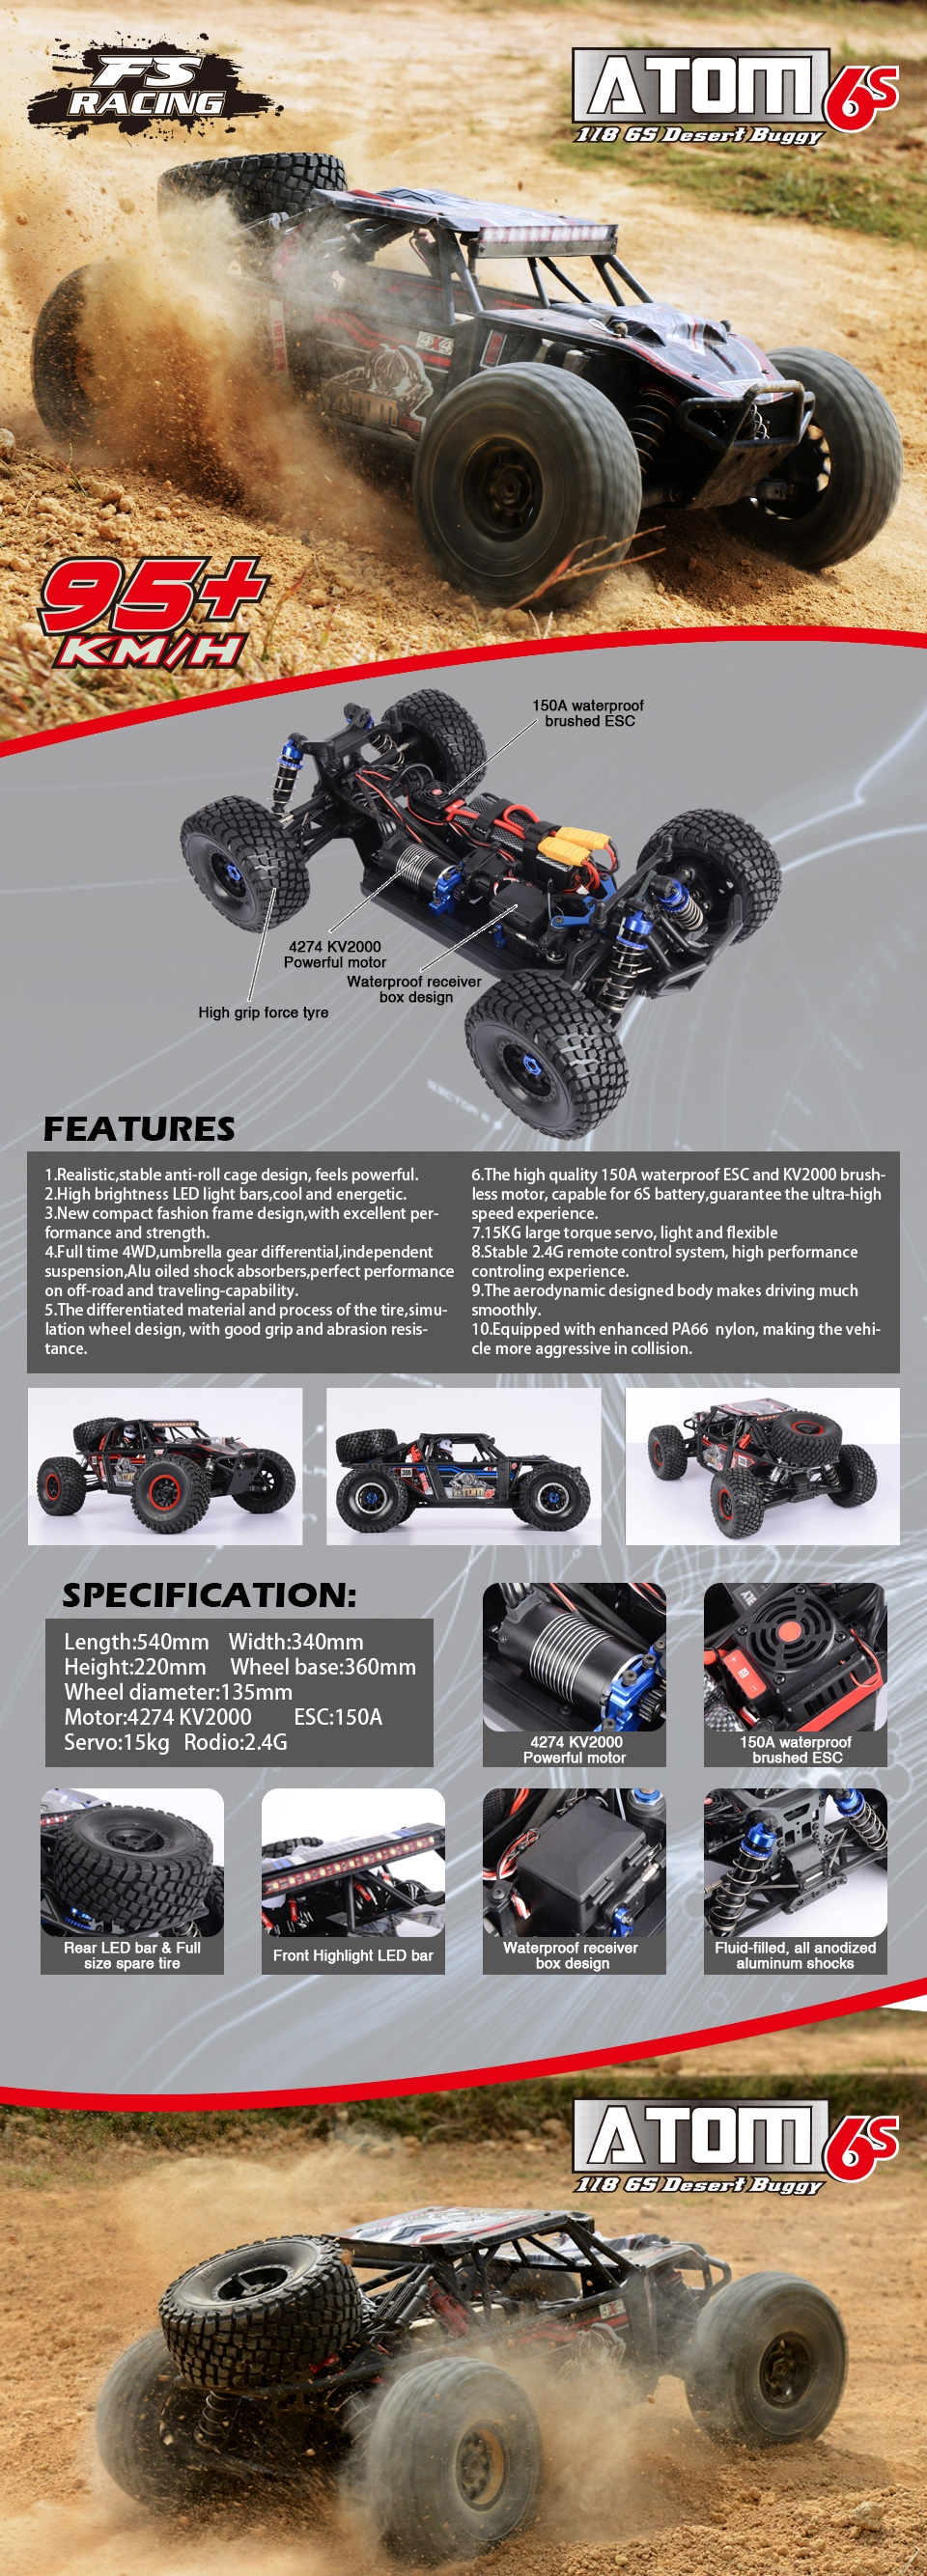 Atom Car Features